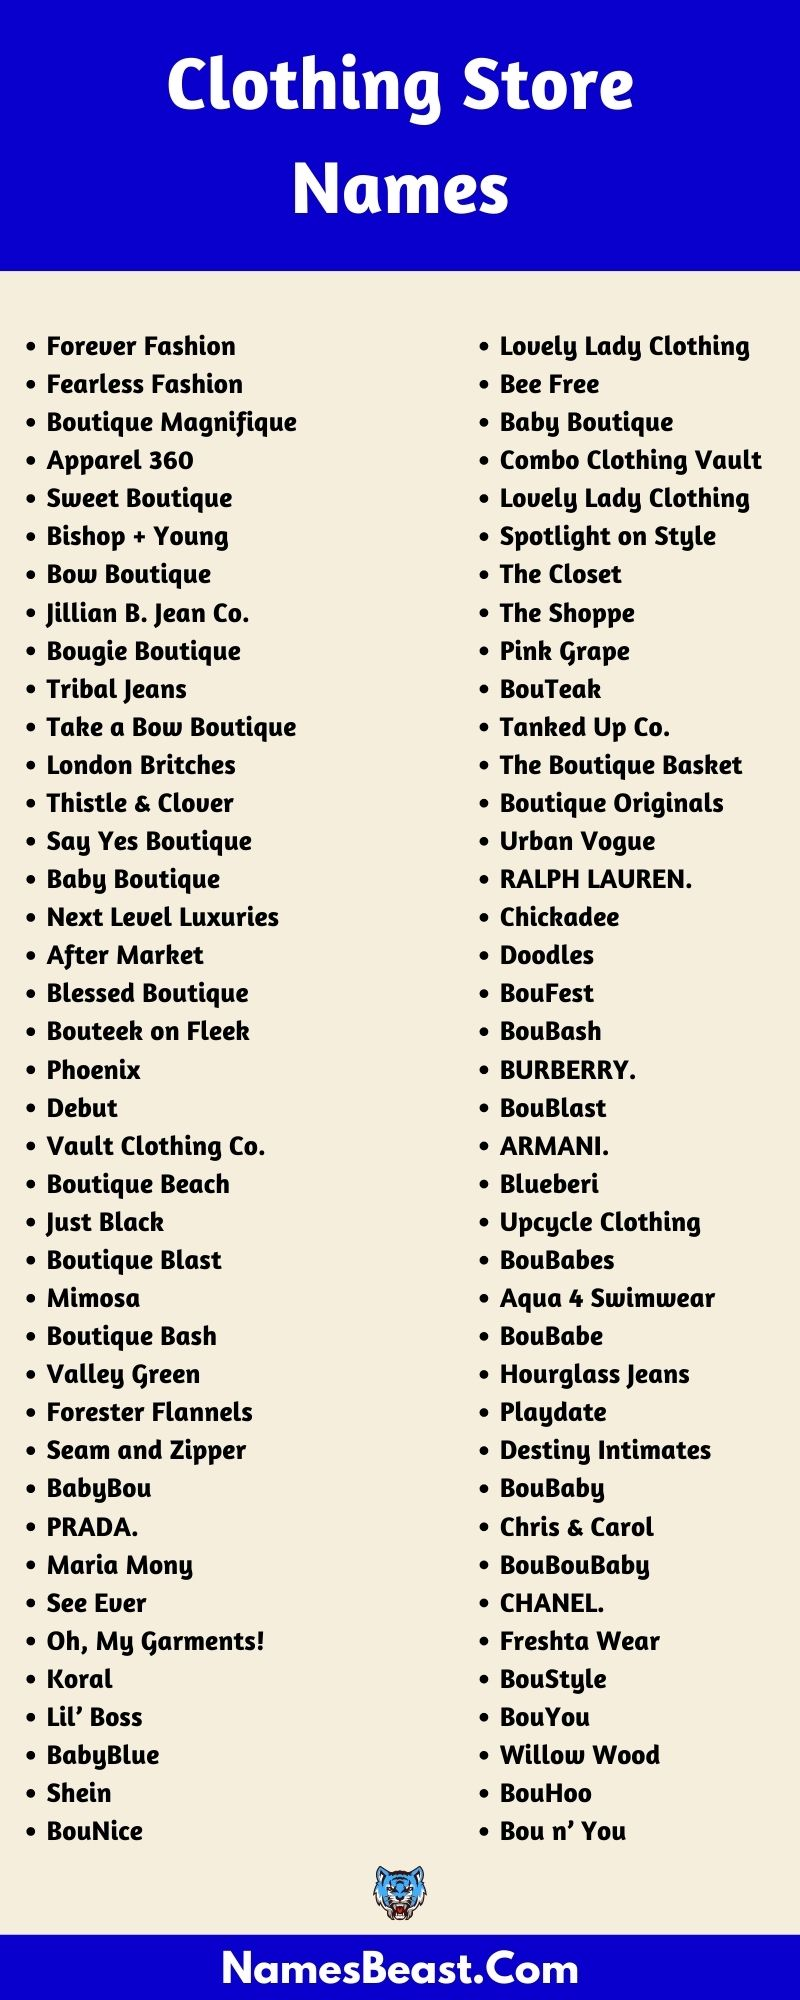 Clothing Store Names